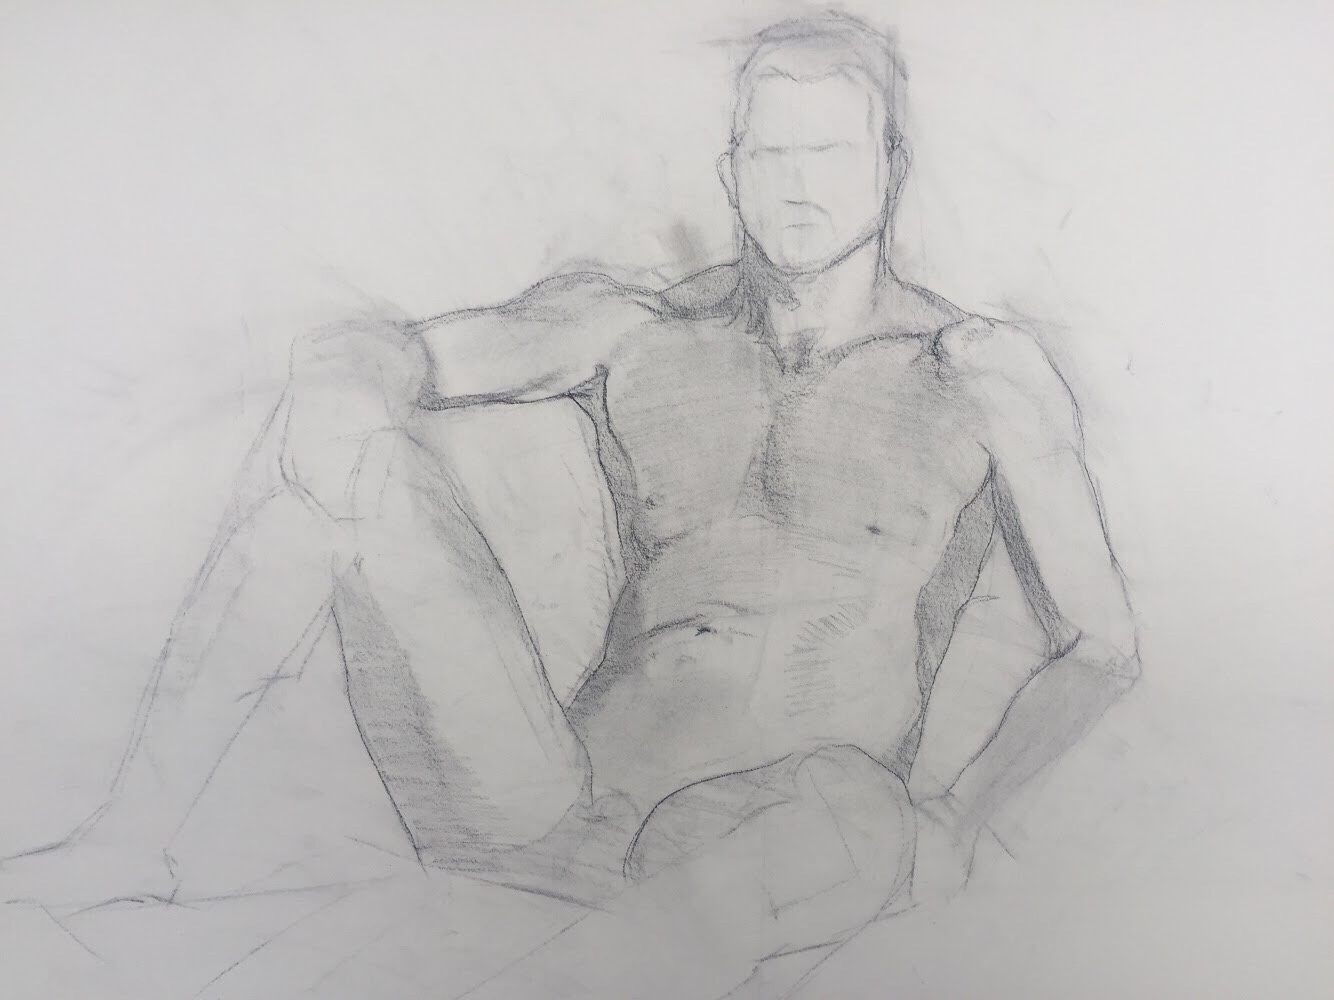 Committing the line work in the figure drawing